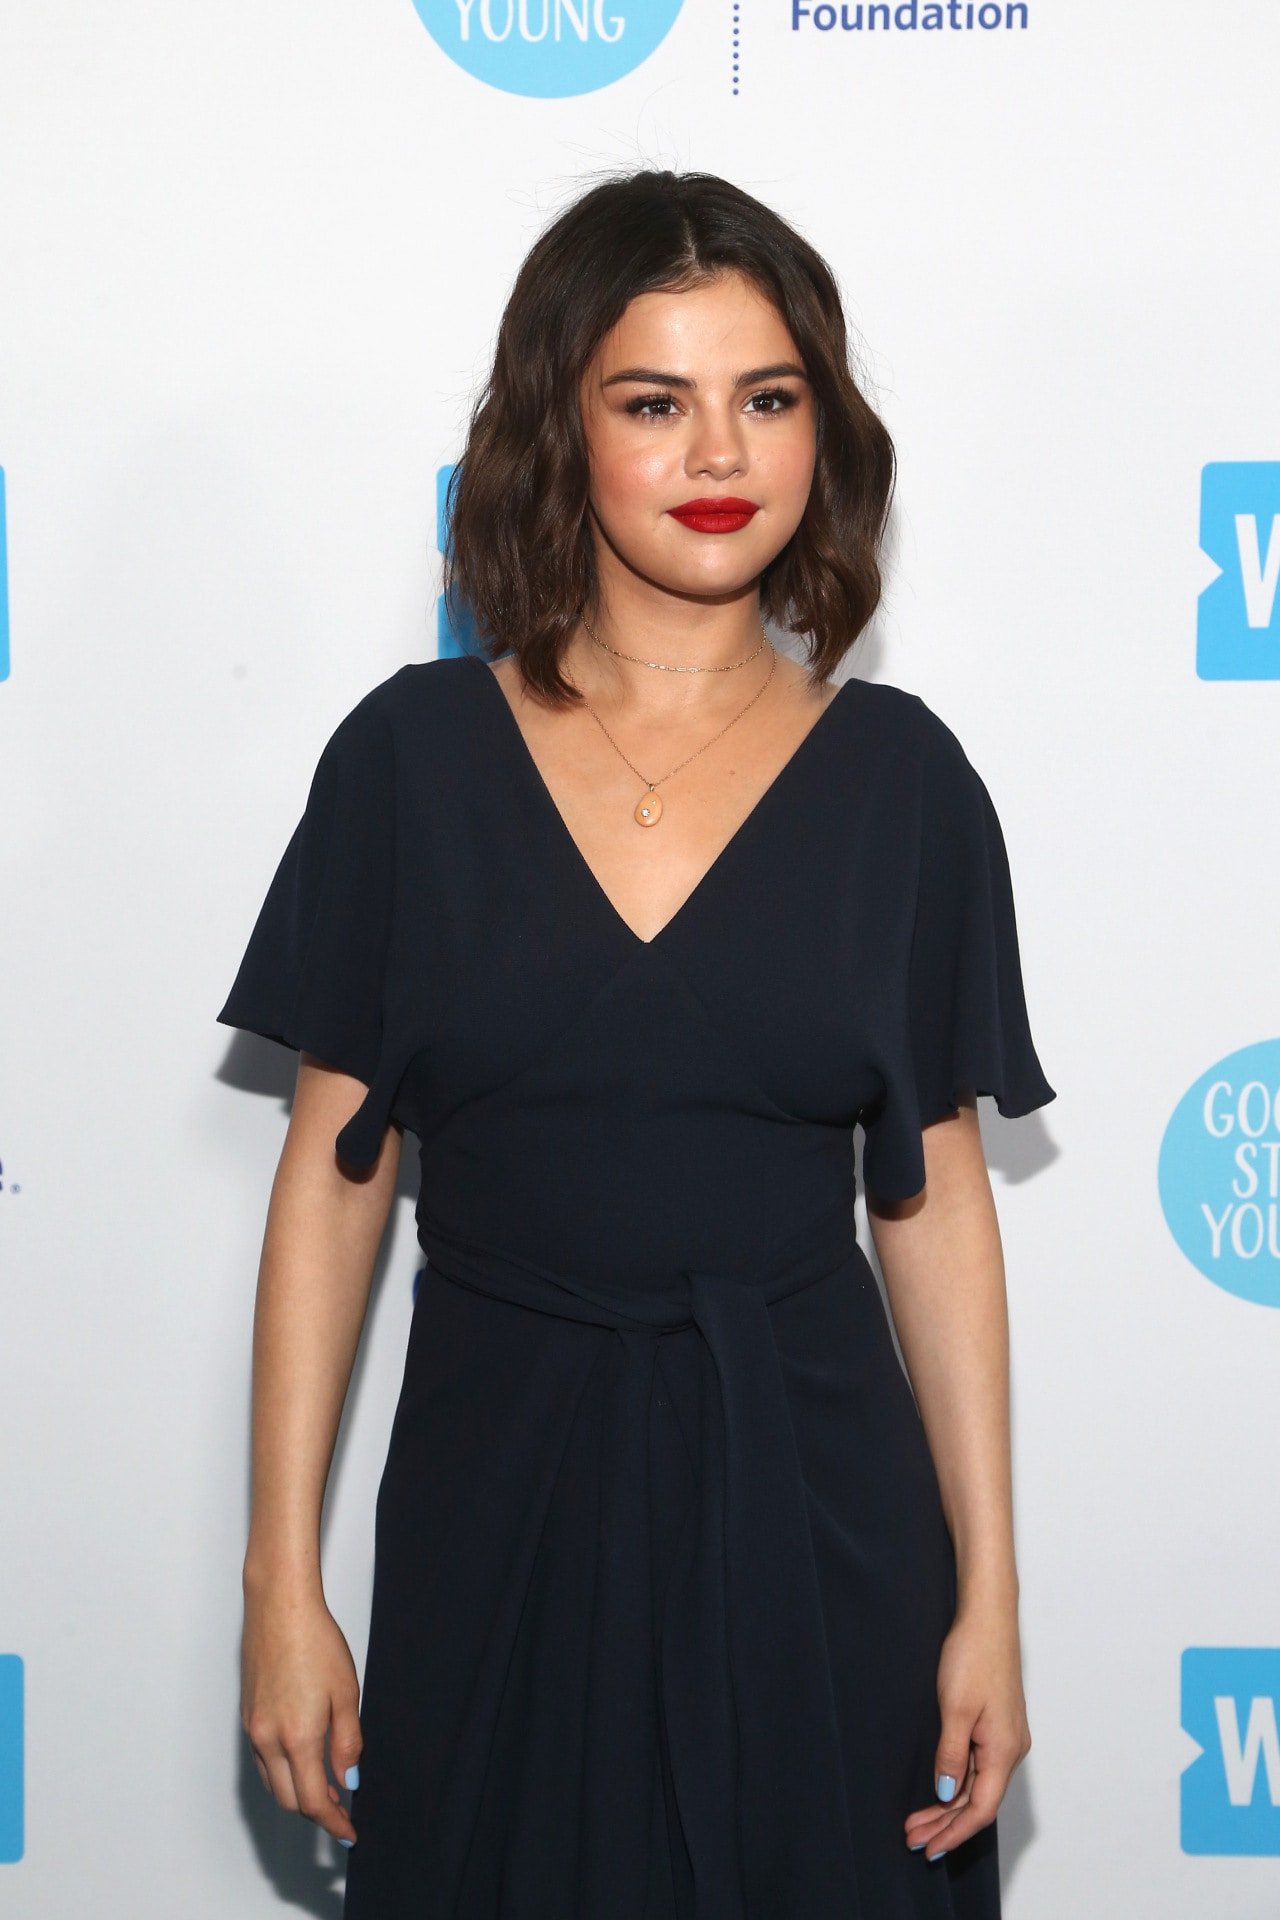 This is why Selena Gomez's fans have gone after Stefano Gabbana